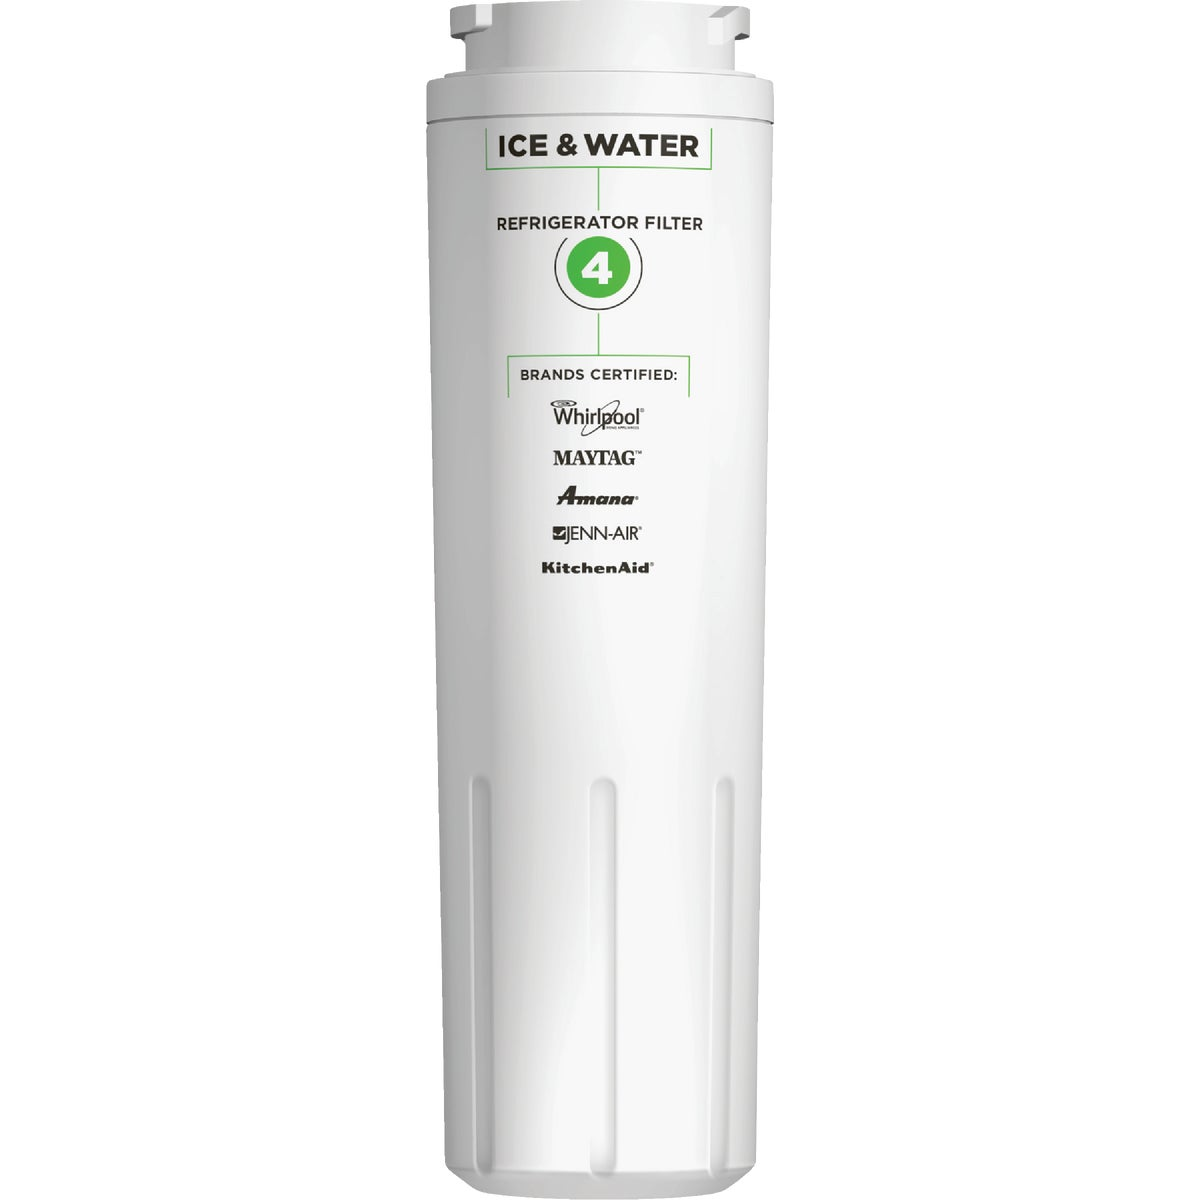 Whirlpool Corp CYST REFRIG WTR FILTER UKF8001